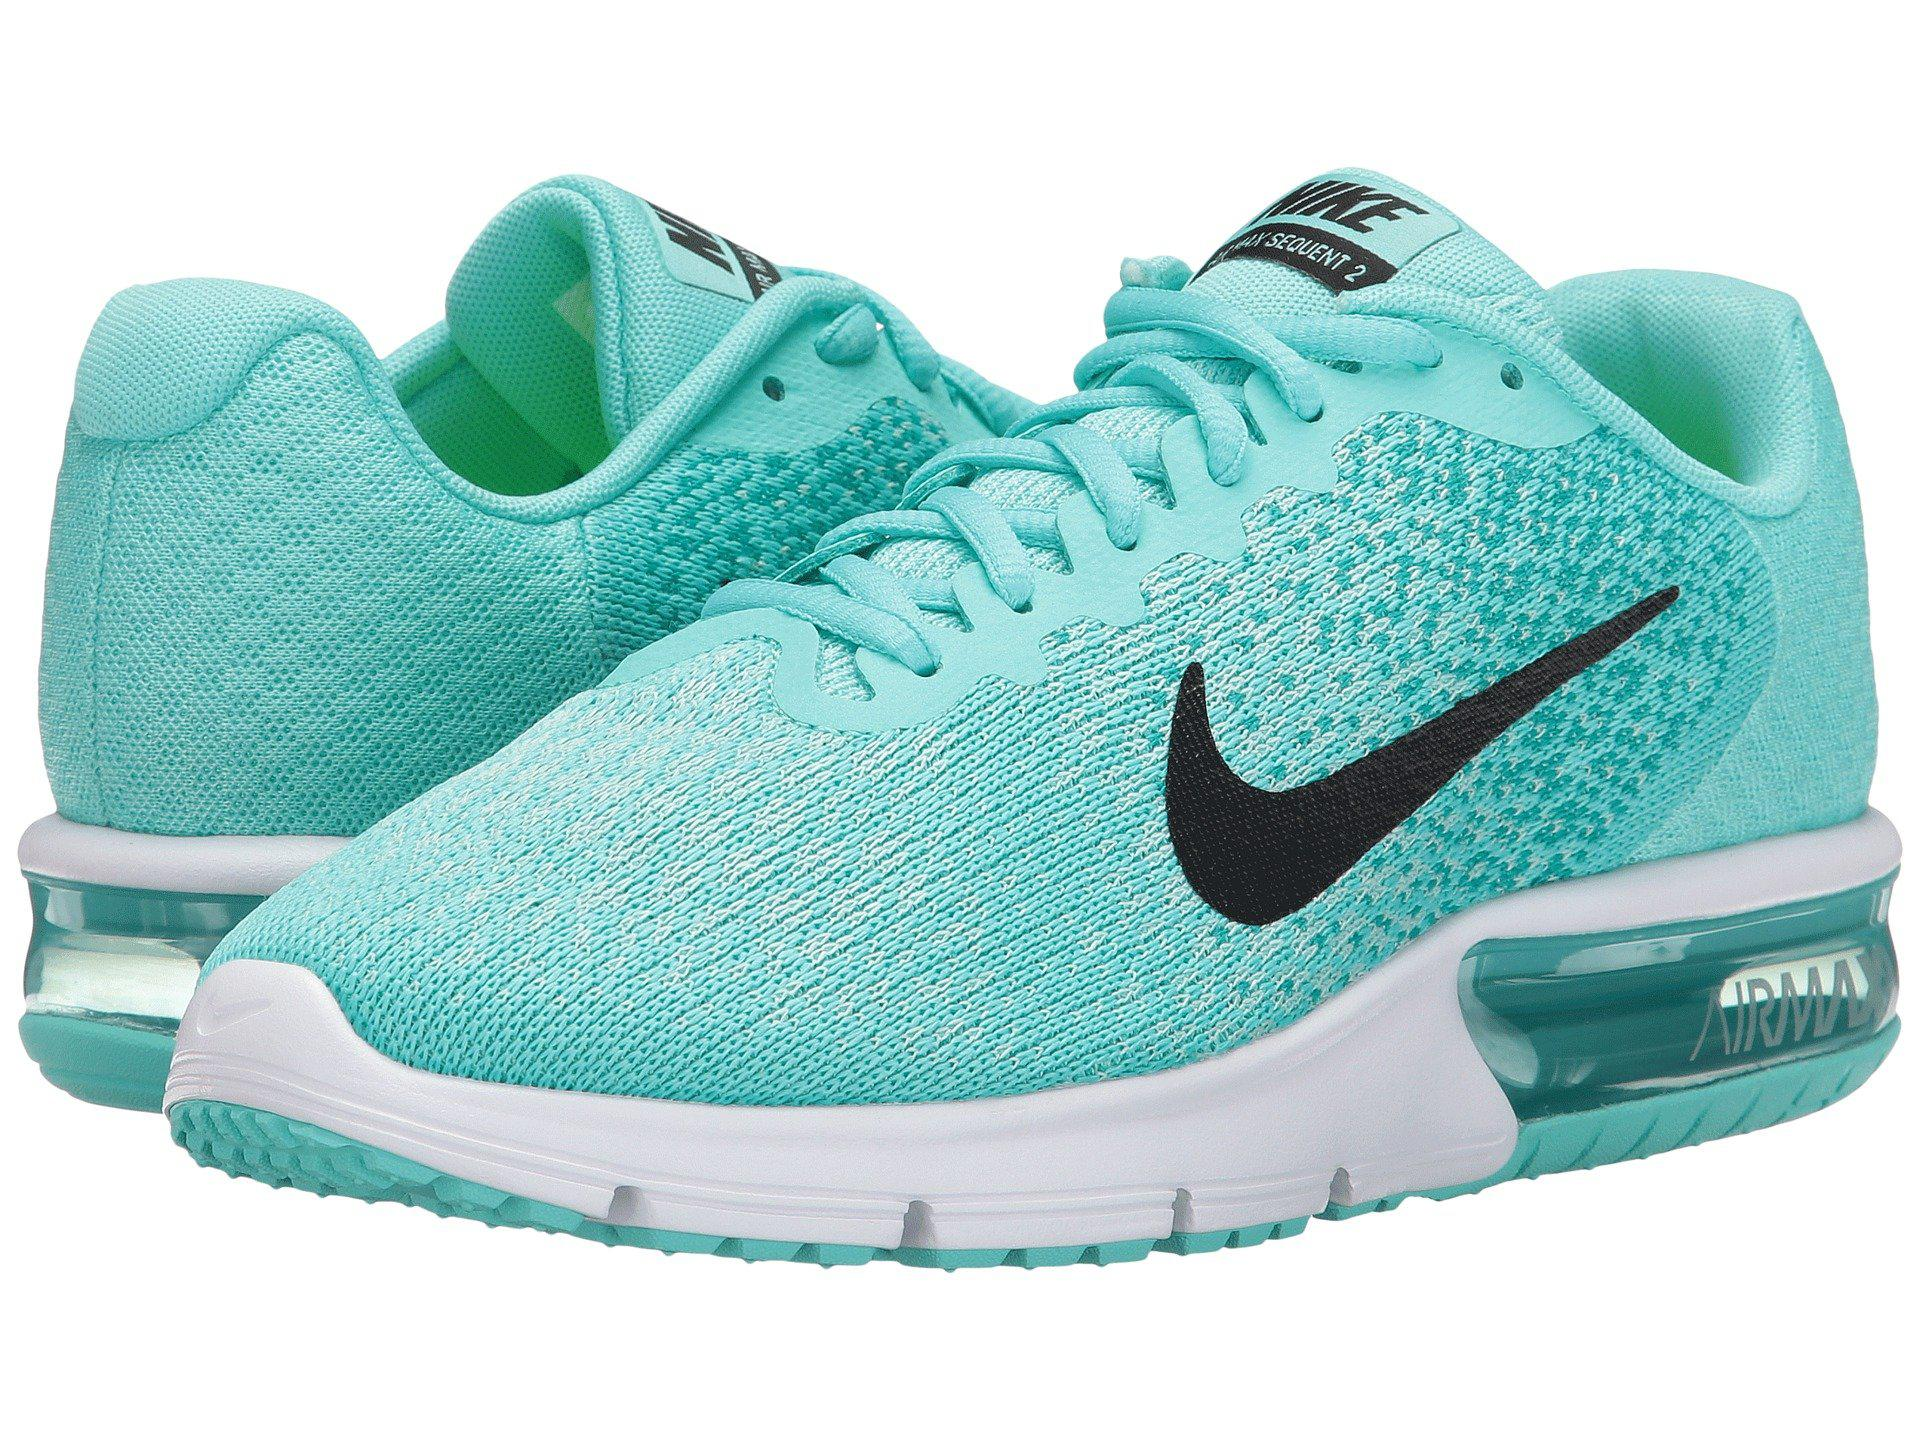 NIKE WMNS AIR MAX THEA Dusty Cactus/Turquoise-Platinum -599409 303- ATHLETIC